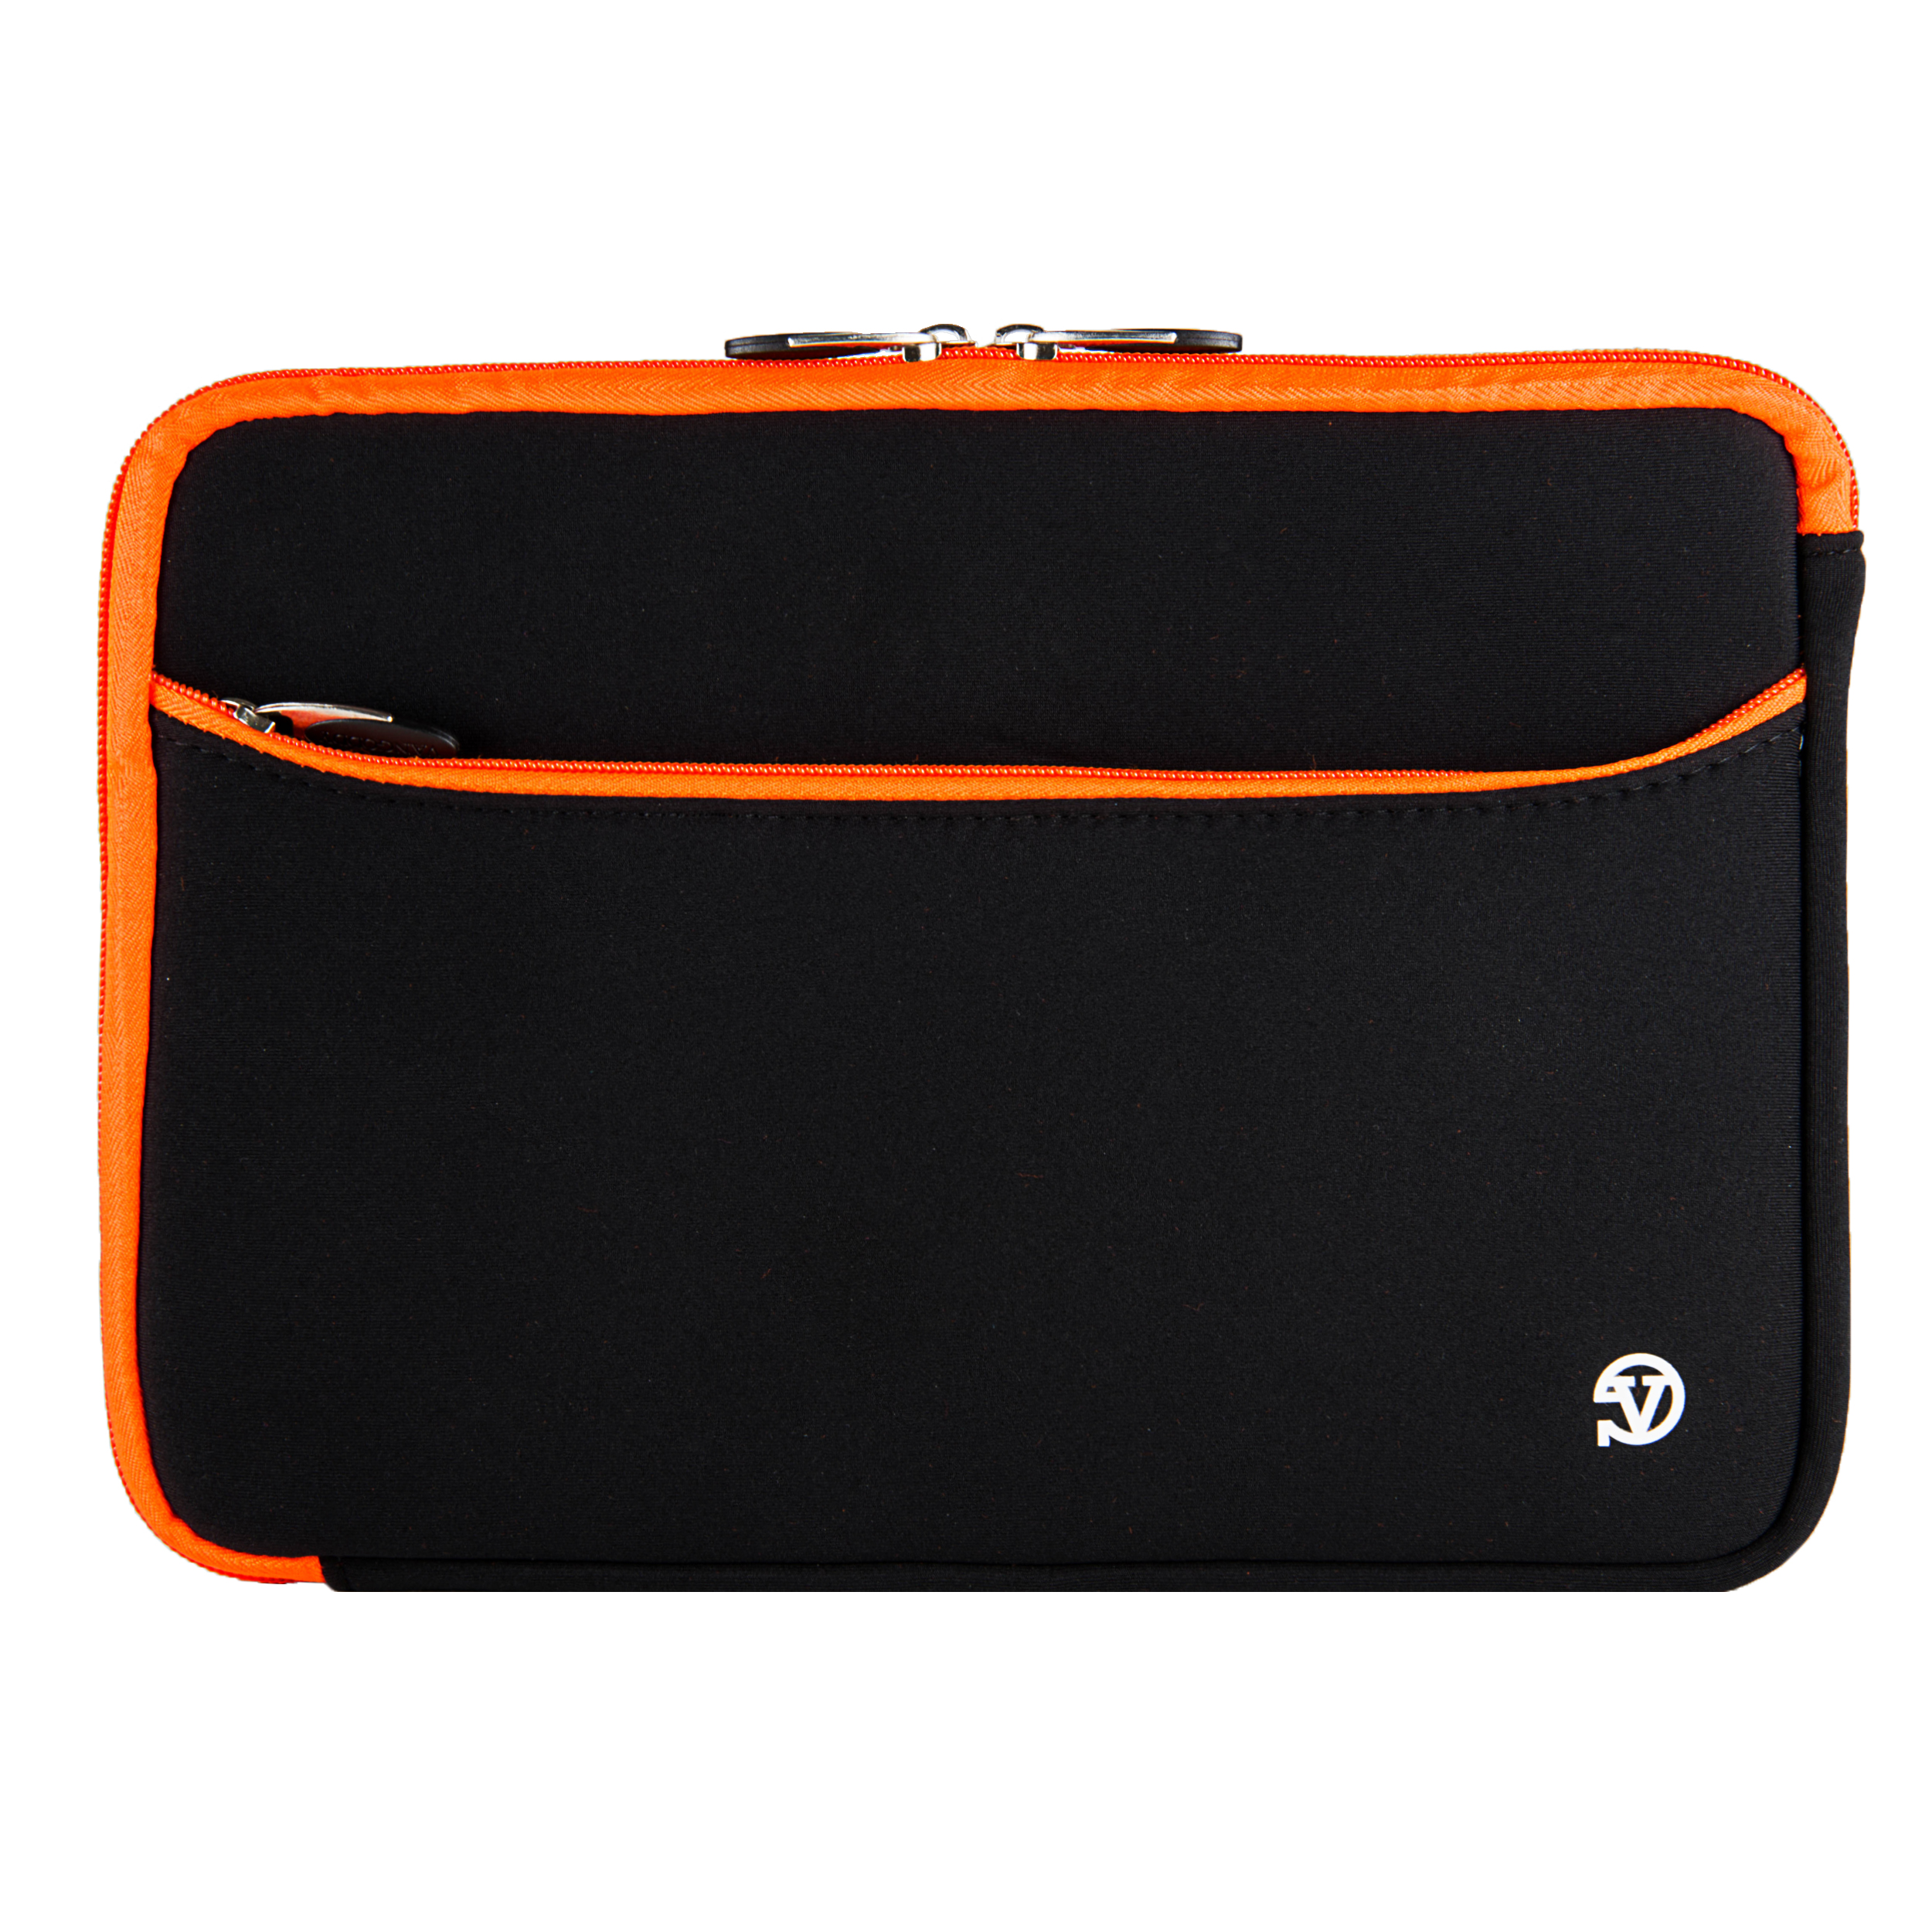 VANGODDY Neoprene Slim Compact Tablet Sleeve Cover Protector fits up to 9, 9.5 10, 10.1, 10.2 inch [Assorted Colors] [Apple, Acer, Asus, HP Samsung, Toshiba, etc]